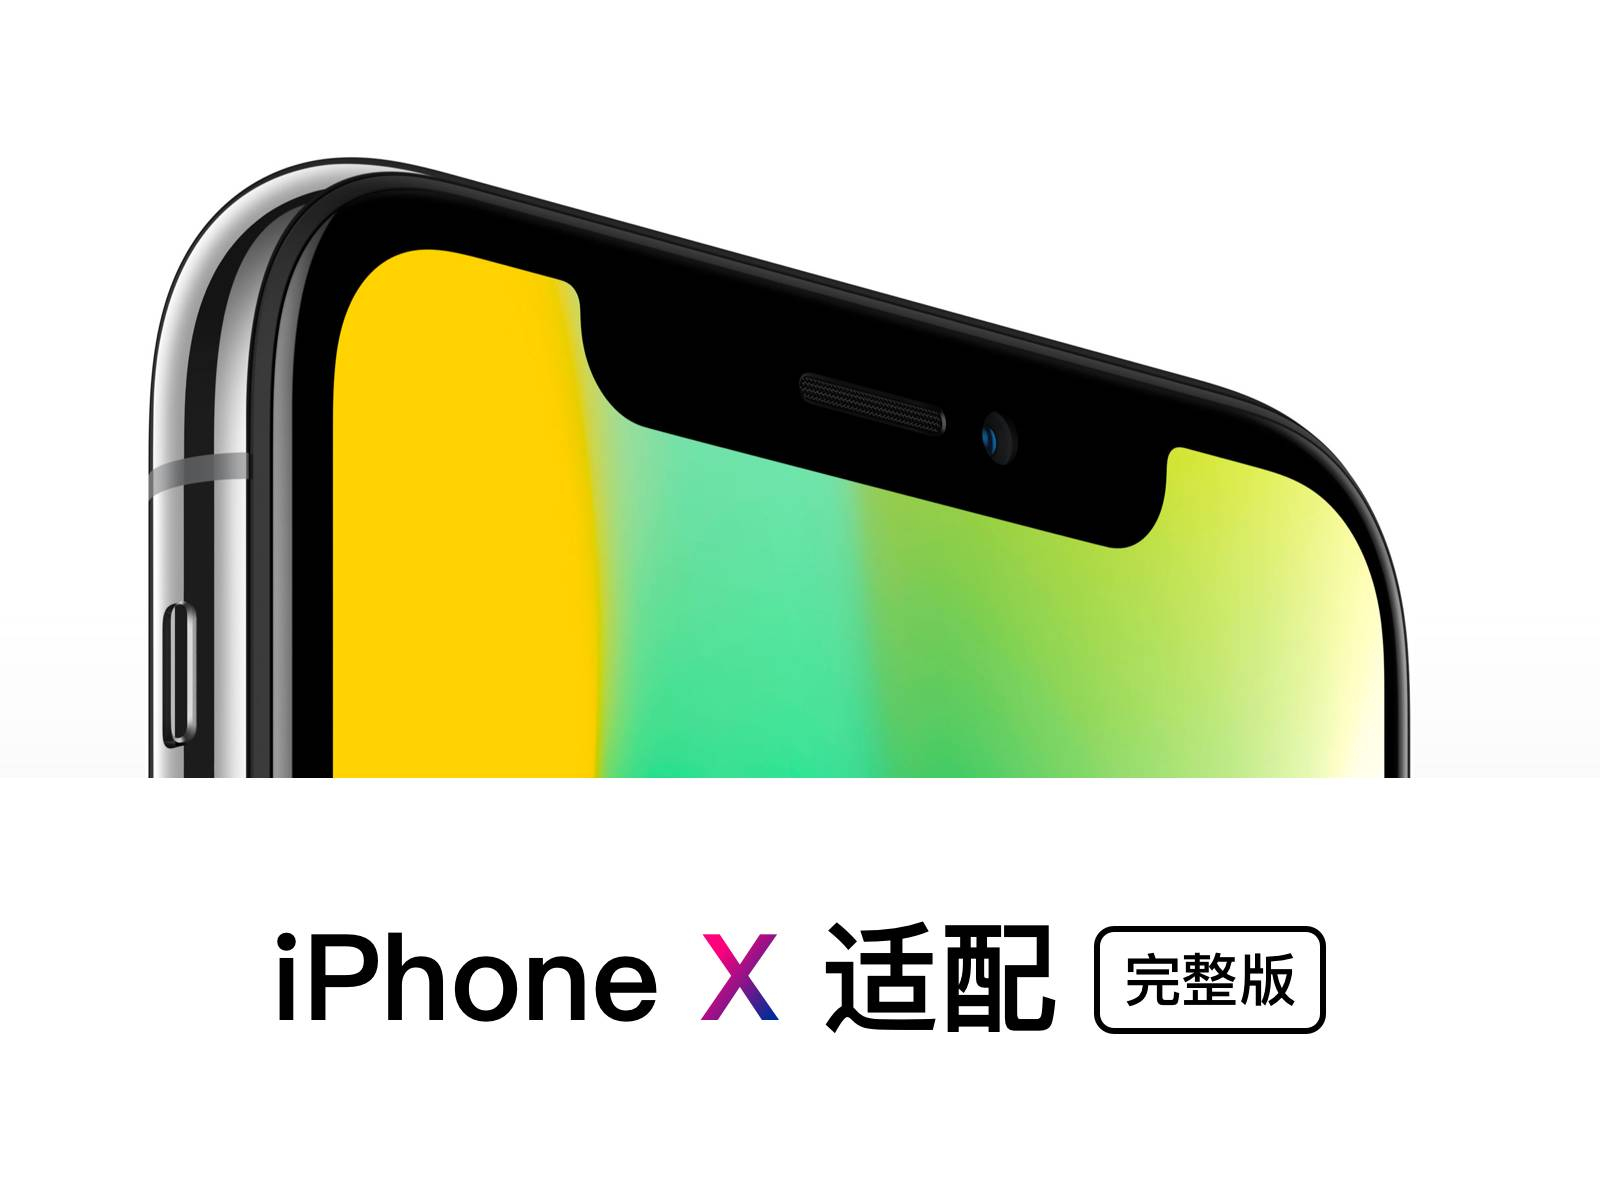 iphone-x-design-size-and-fit (7)